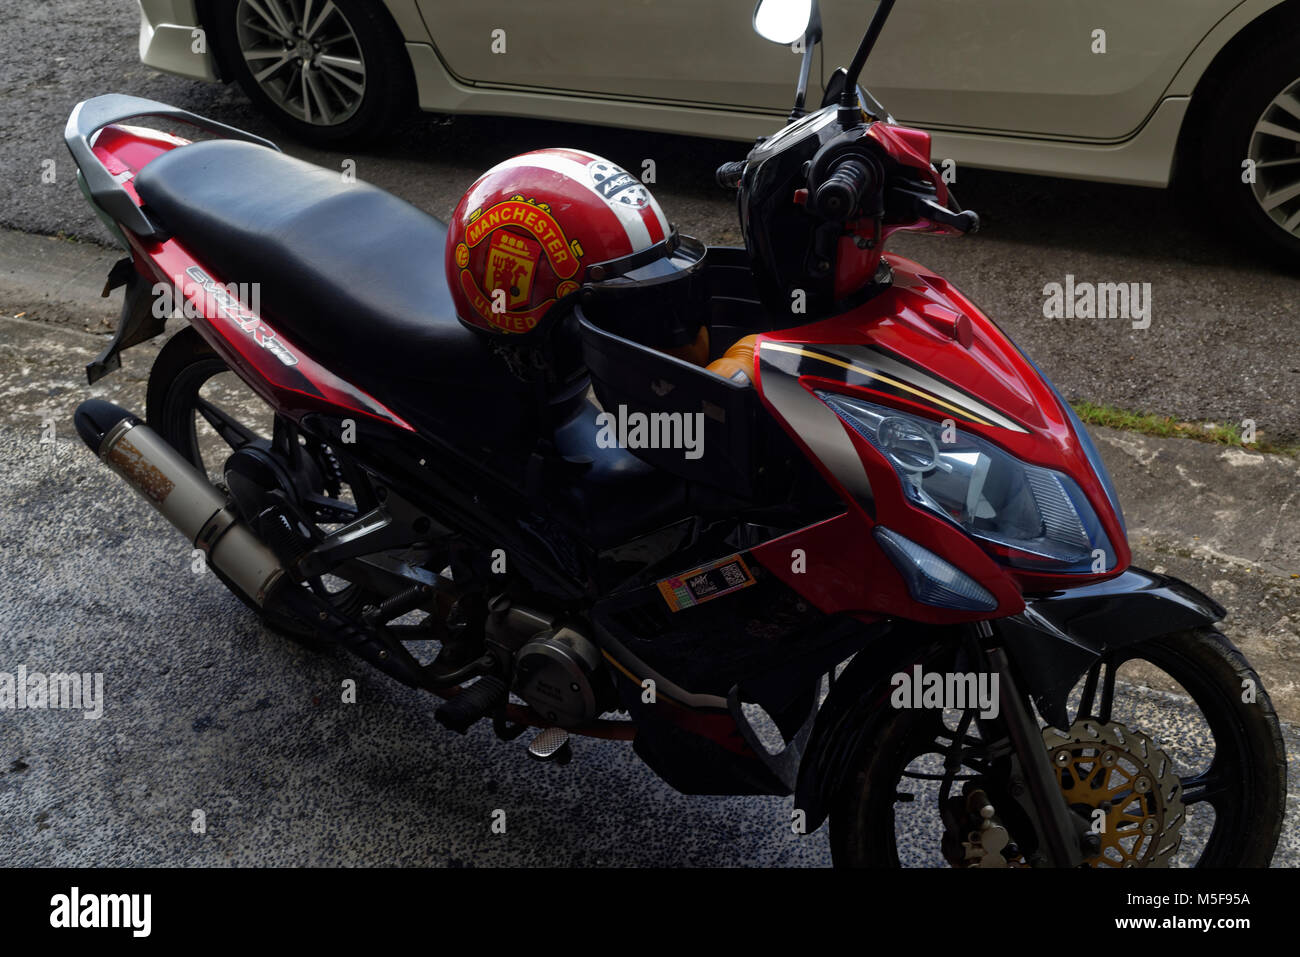 Manchester United crash helmet on a parked motorcycle, Kuching, Malaysia, Borneo Stock Photo